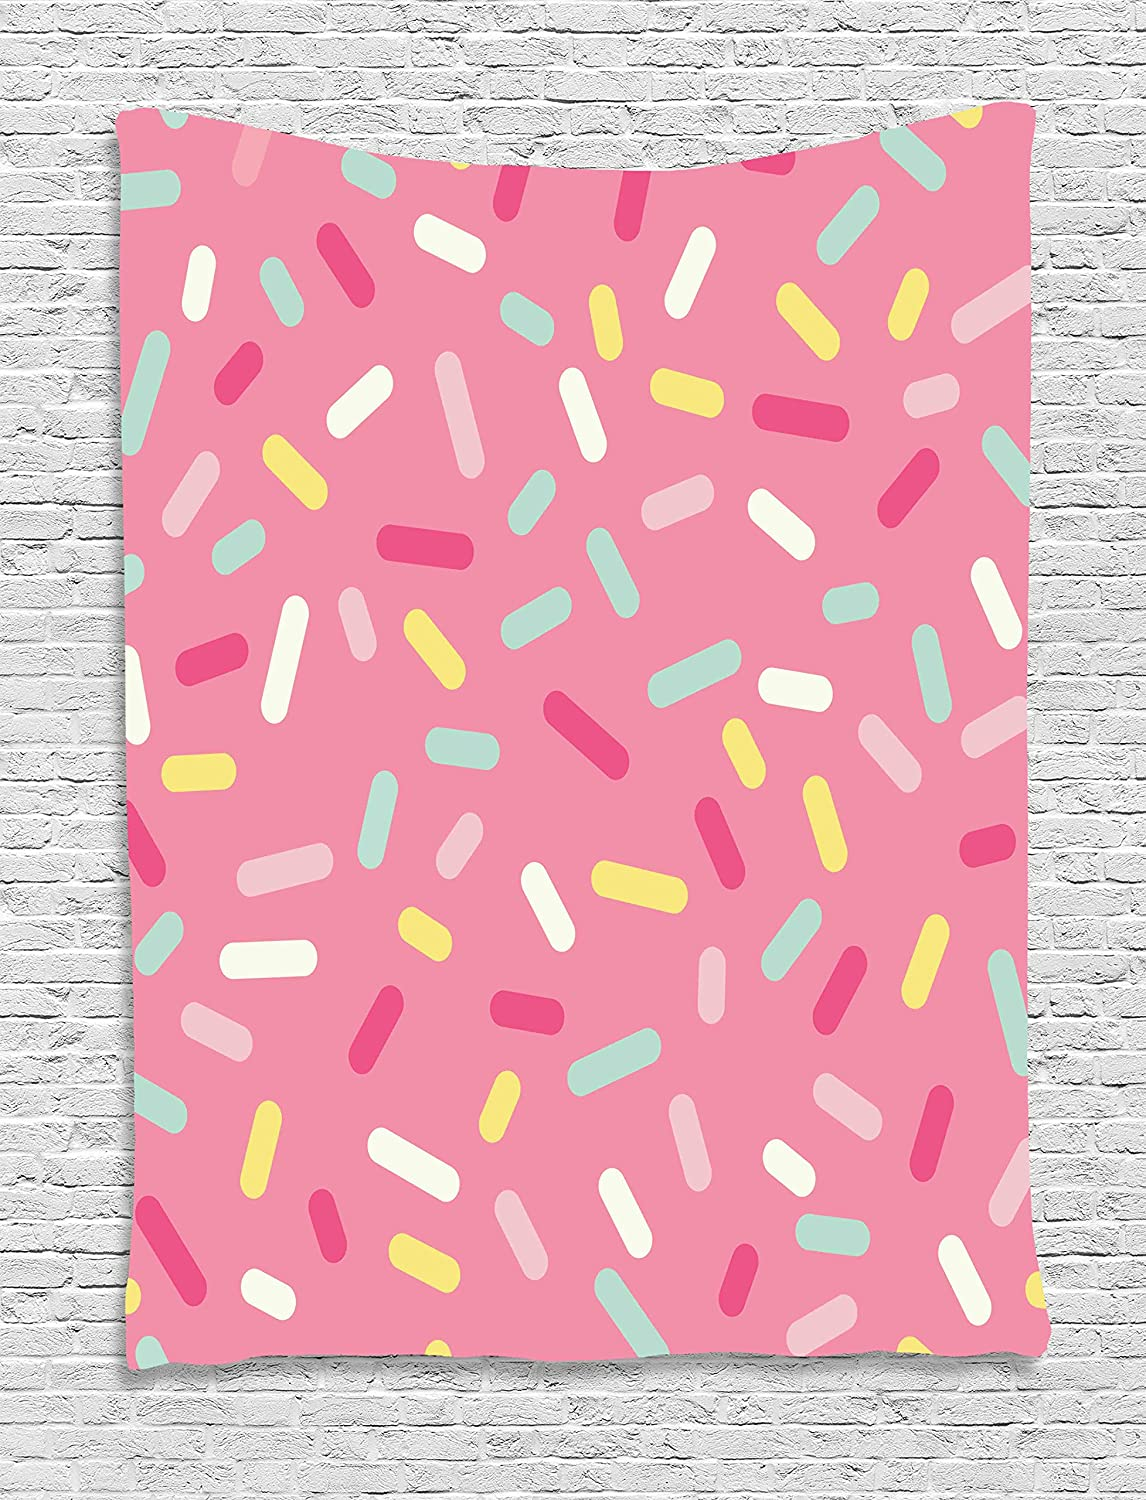 Ambesonne Pink and White Tapestry, Abstract Pattern of Colorful Donut Sprinkles Tasty Food Bakery Theme, Wall Hanging for Bedroom Living Room Dorm, 60